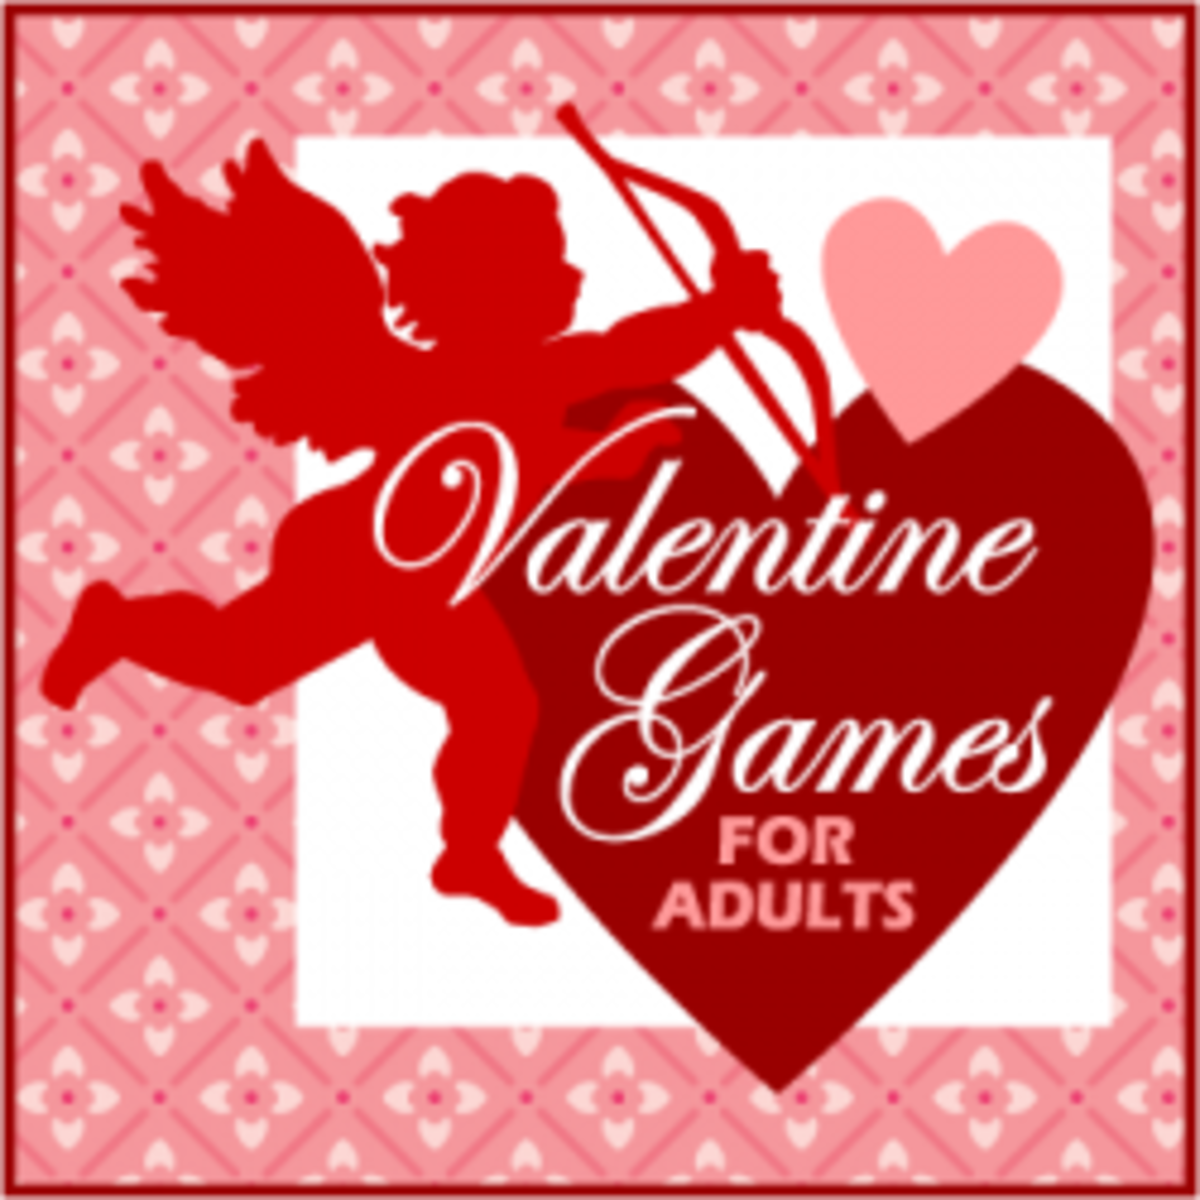 Valentine Games for Adults